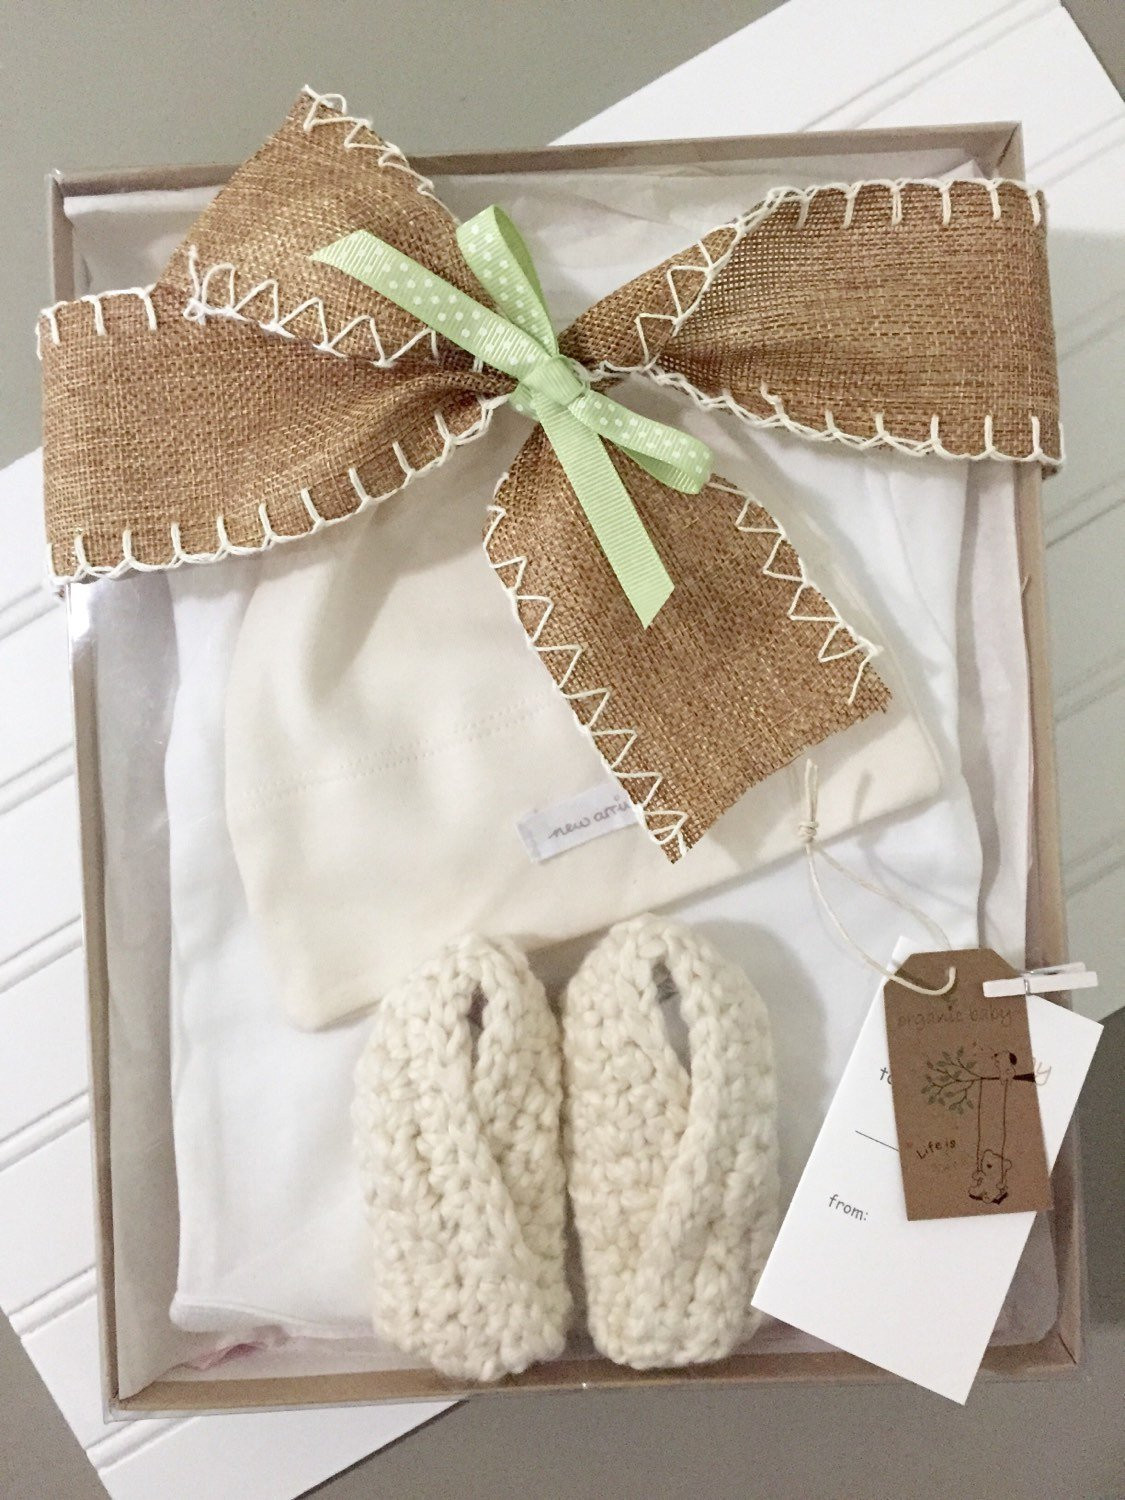 Best ideas about Gender Neutral Baby Gift Ideas . Save or Pin Gender Neutral Baby Gift Set ORGANIC new by greenbabybaskets Now.